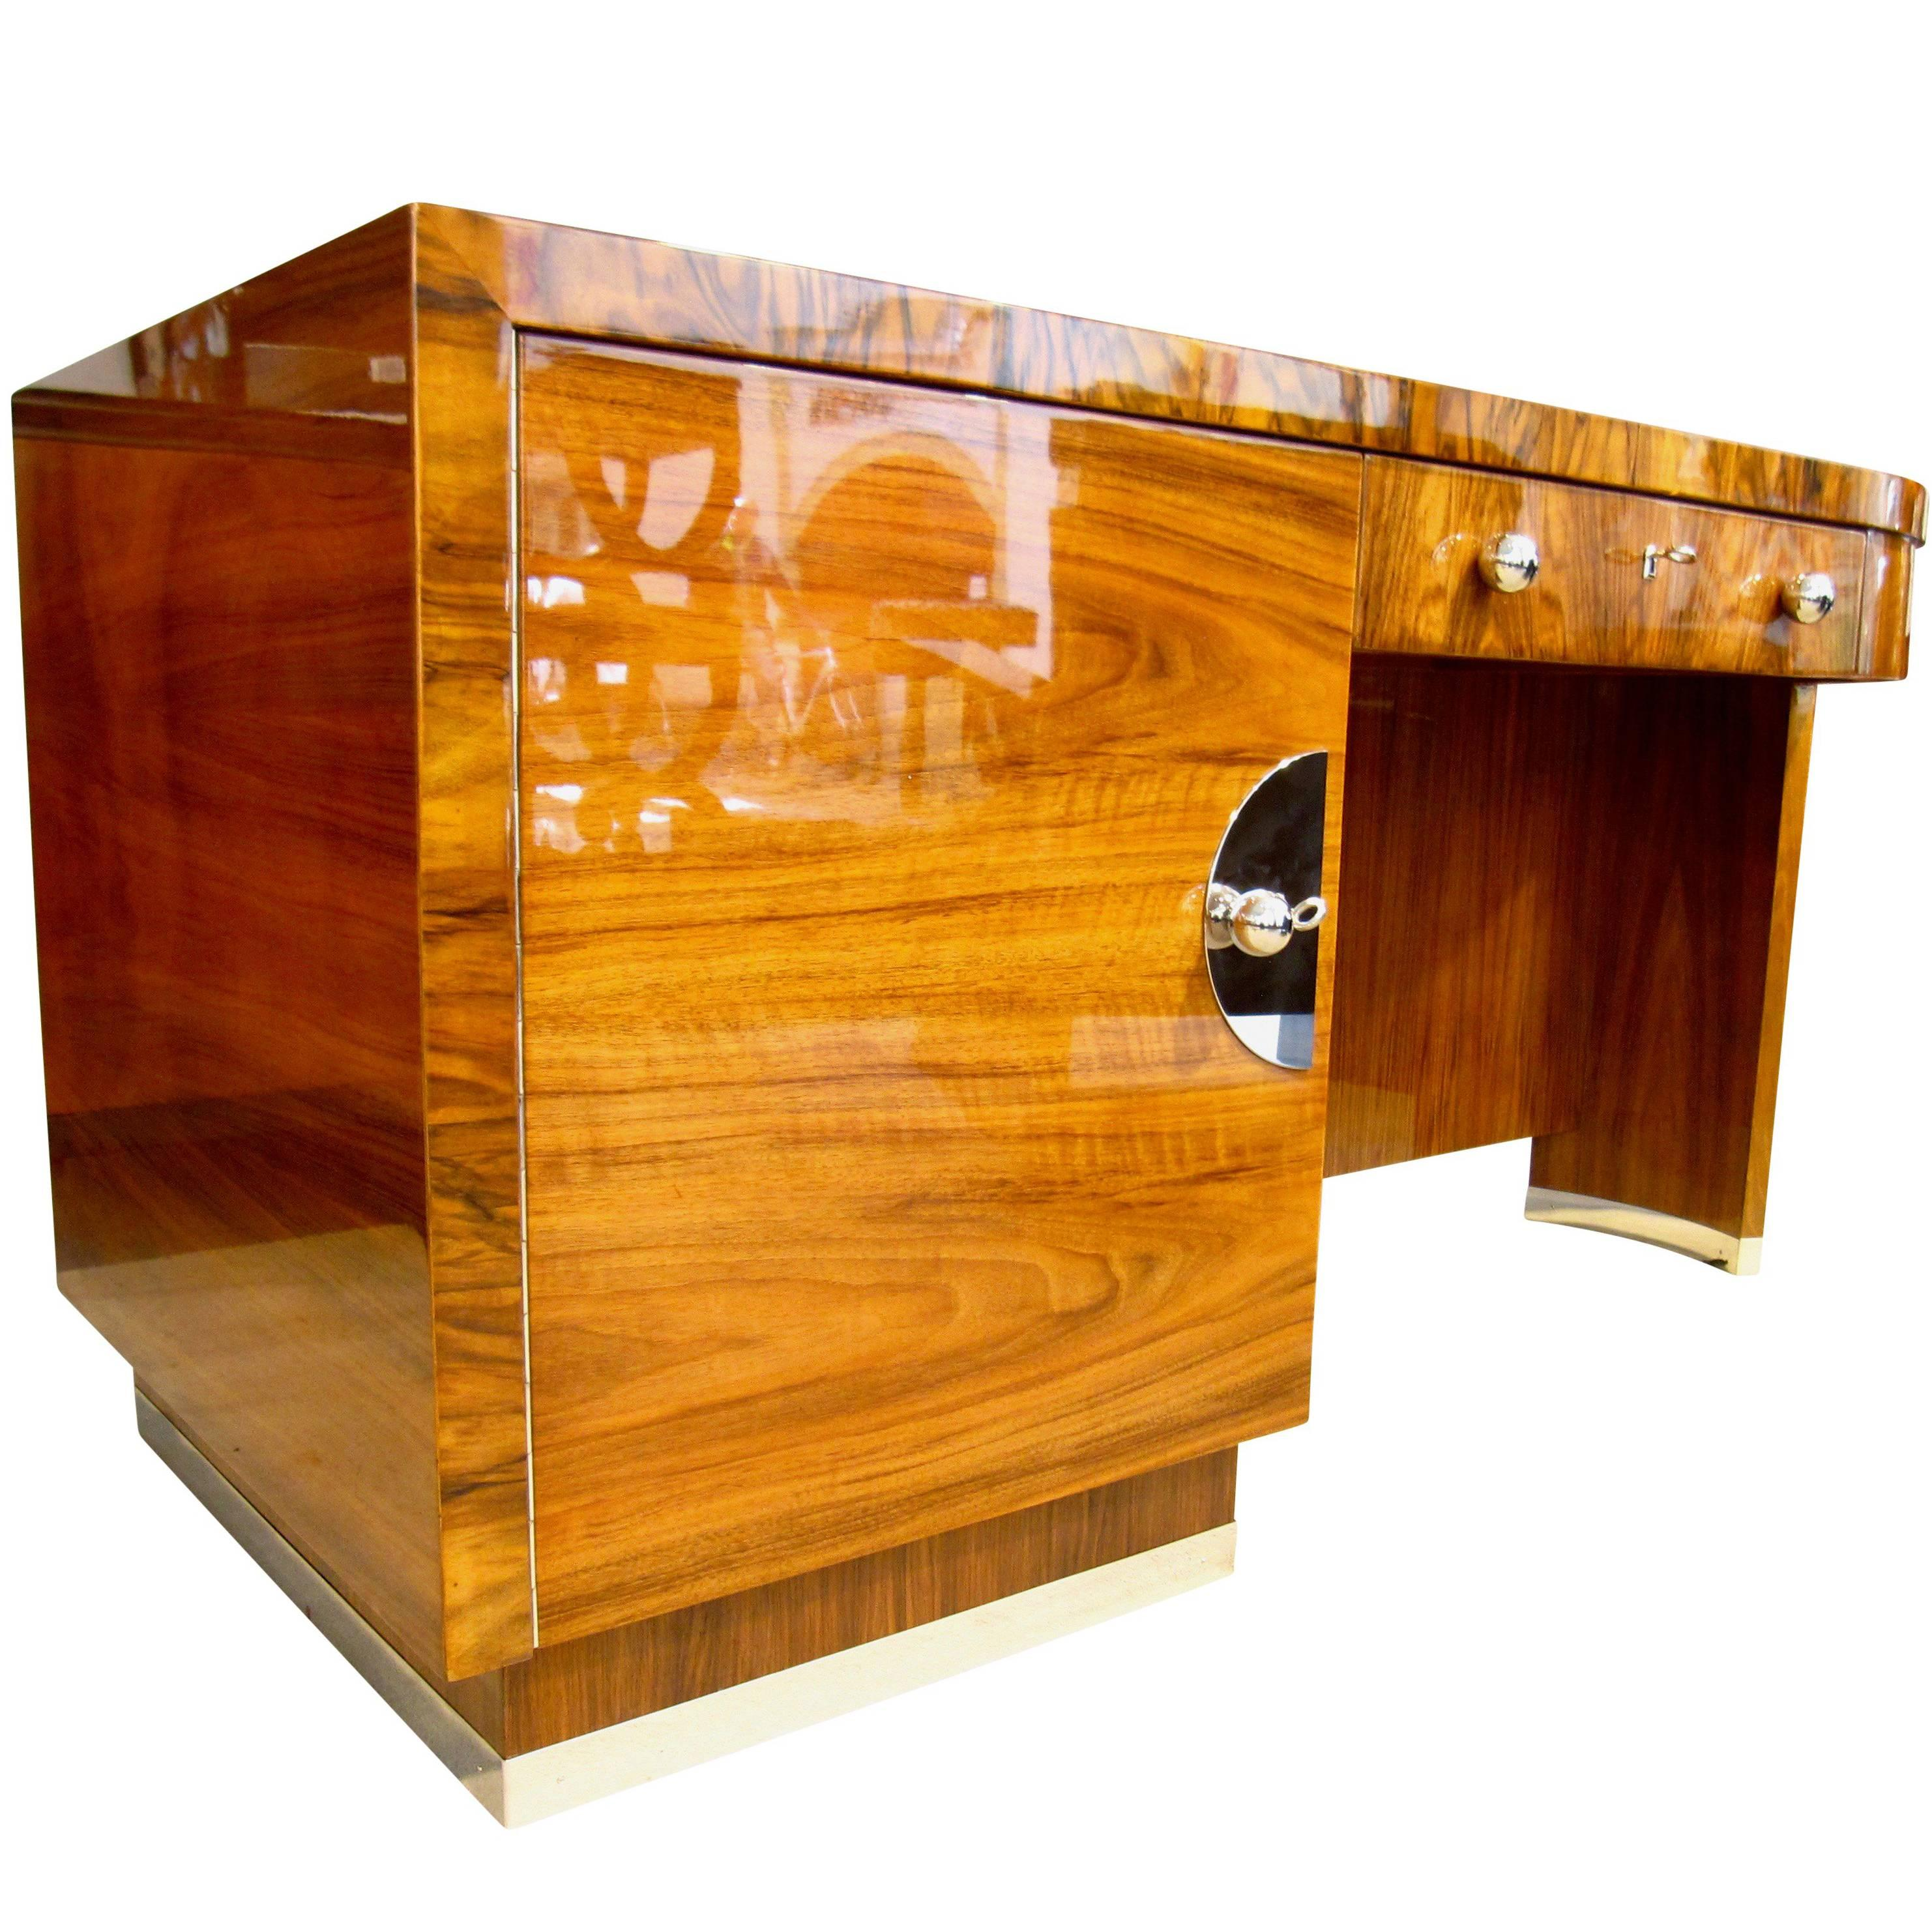 bauhaus desk mobel deutsche werkstatten walnut germany circa 1930 at 1stdibs